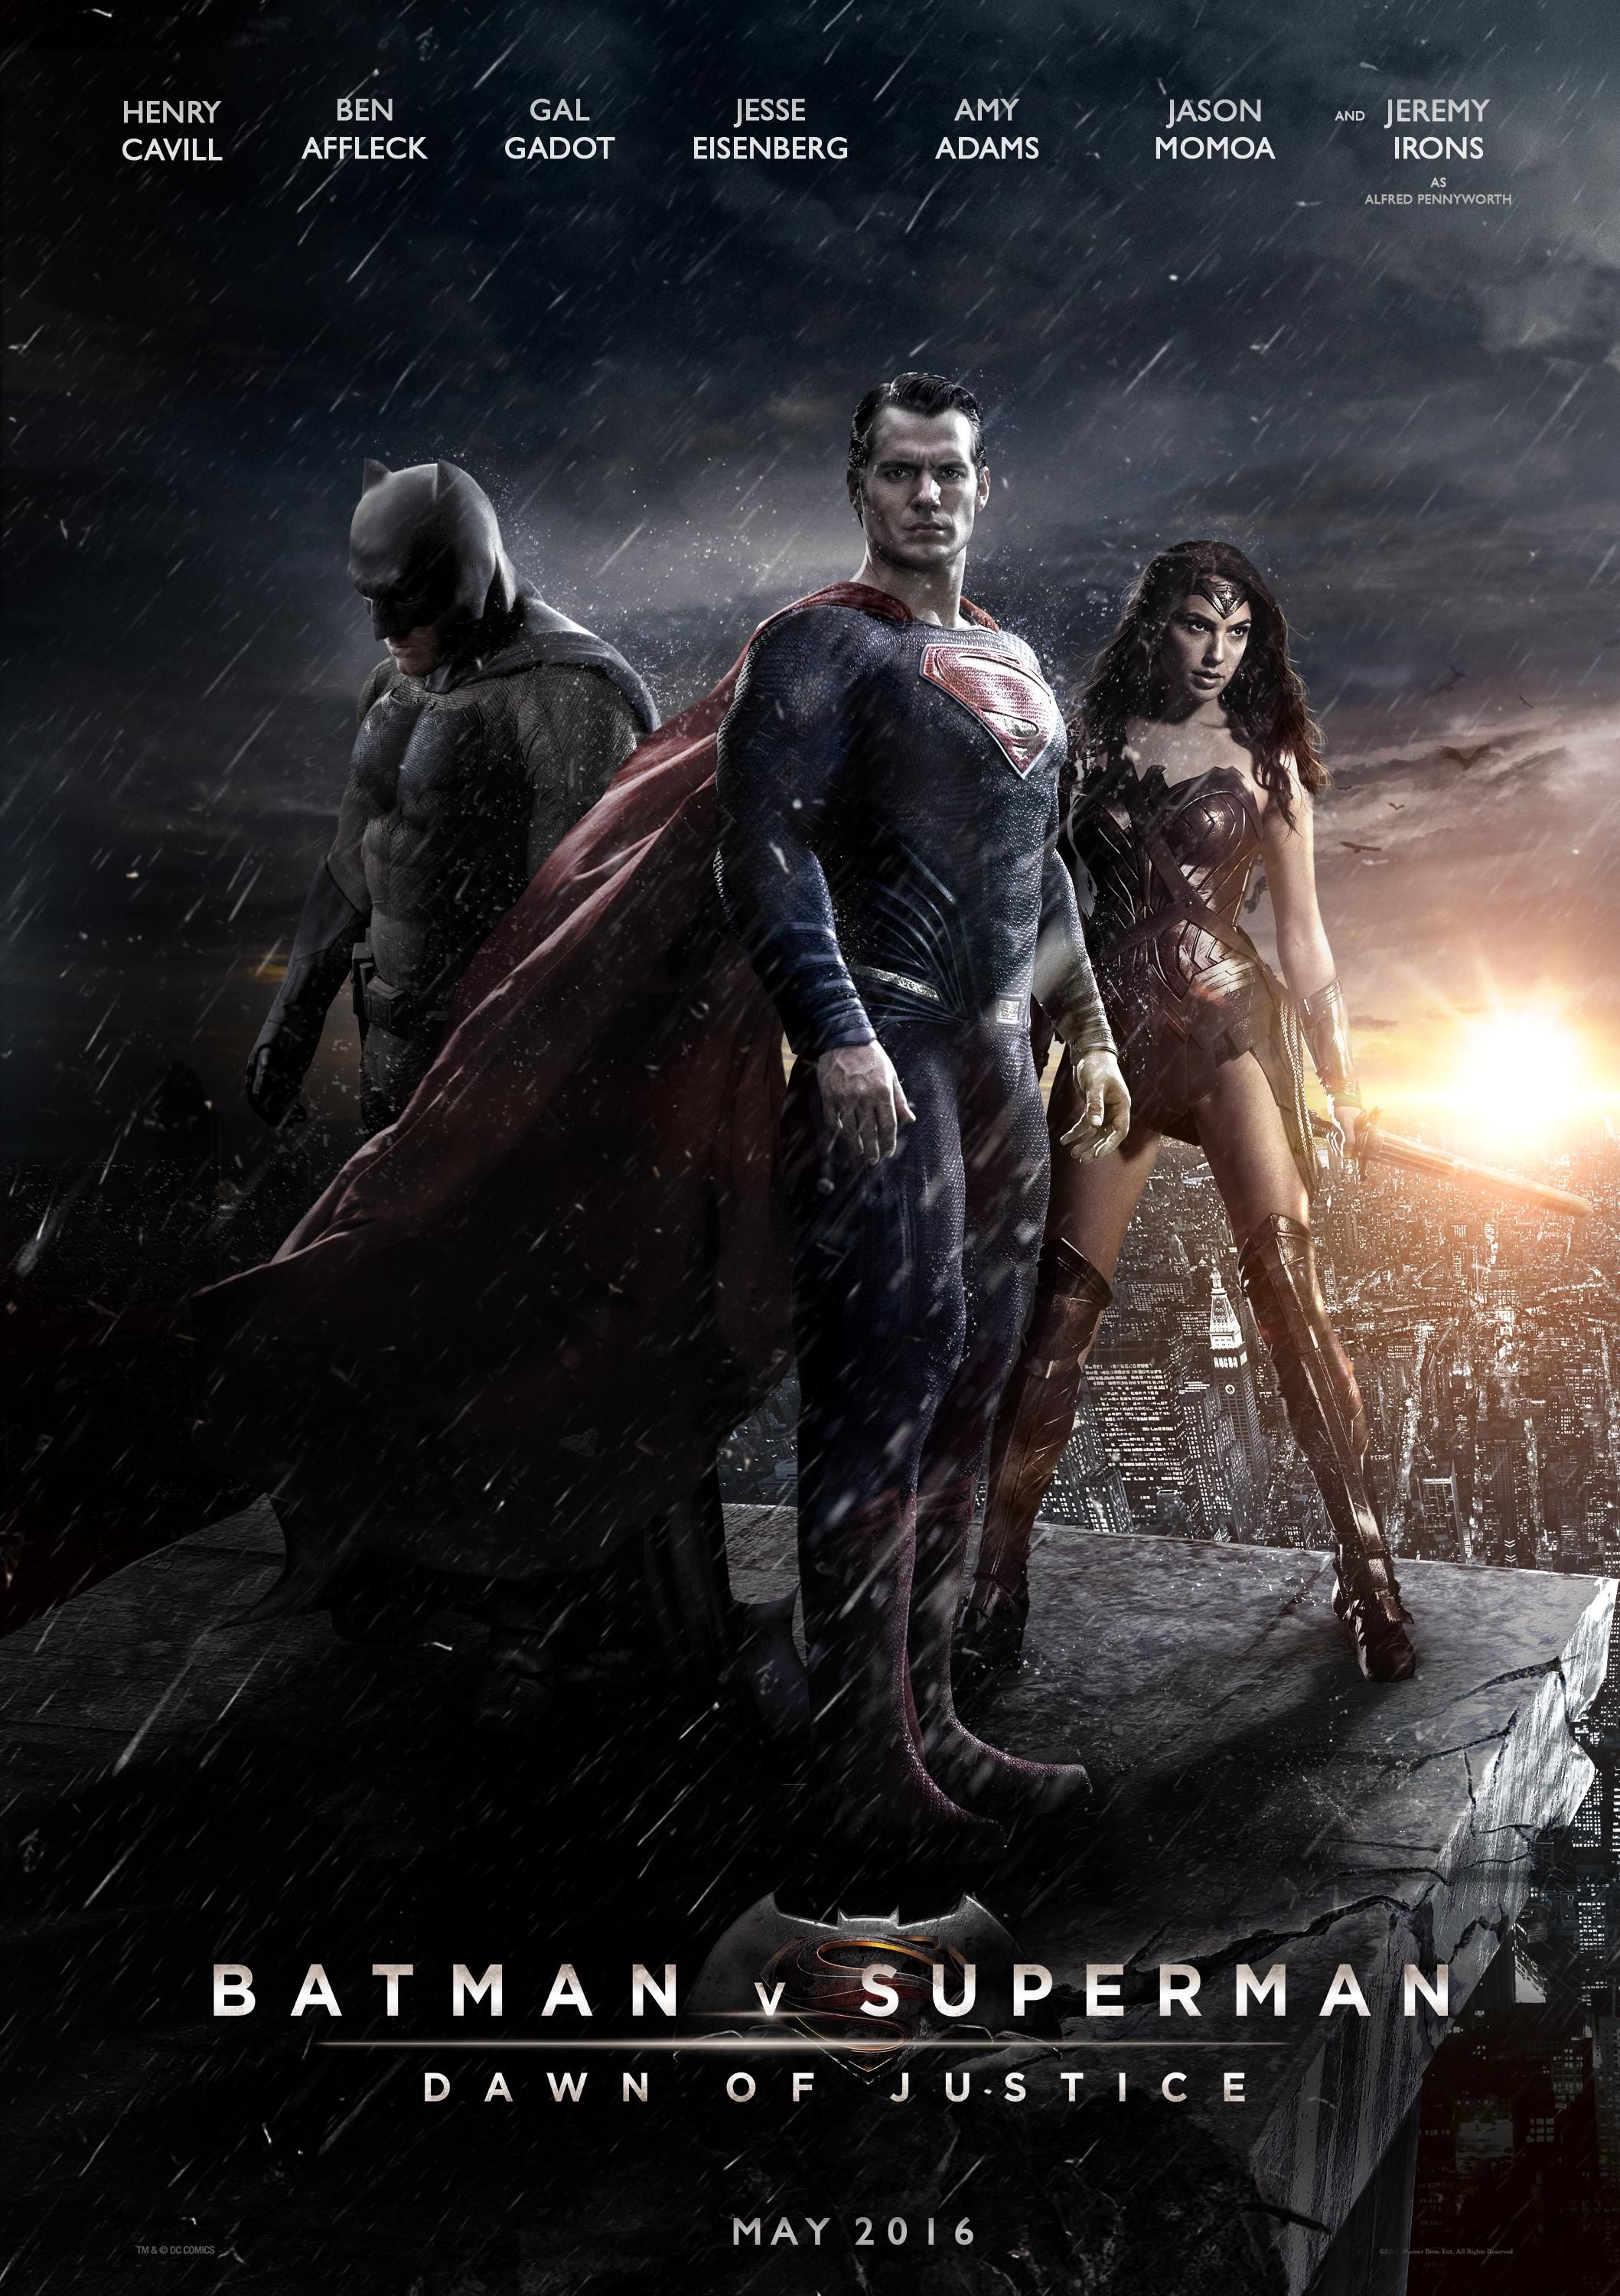 FAN MADE BATMAN V SUPERMAN Poster Brings The Trinity Together